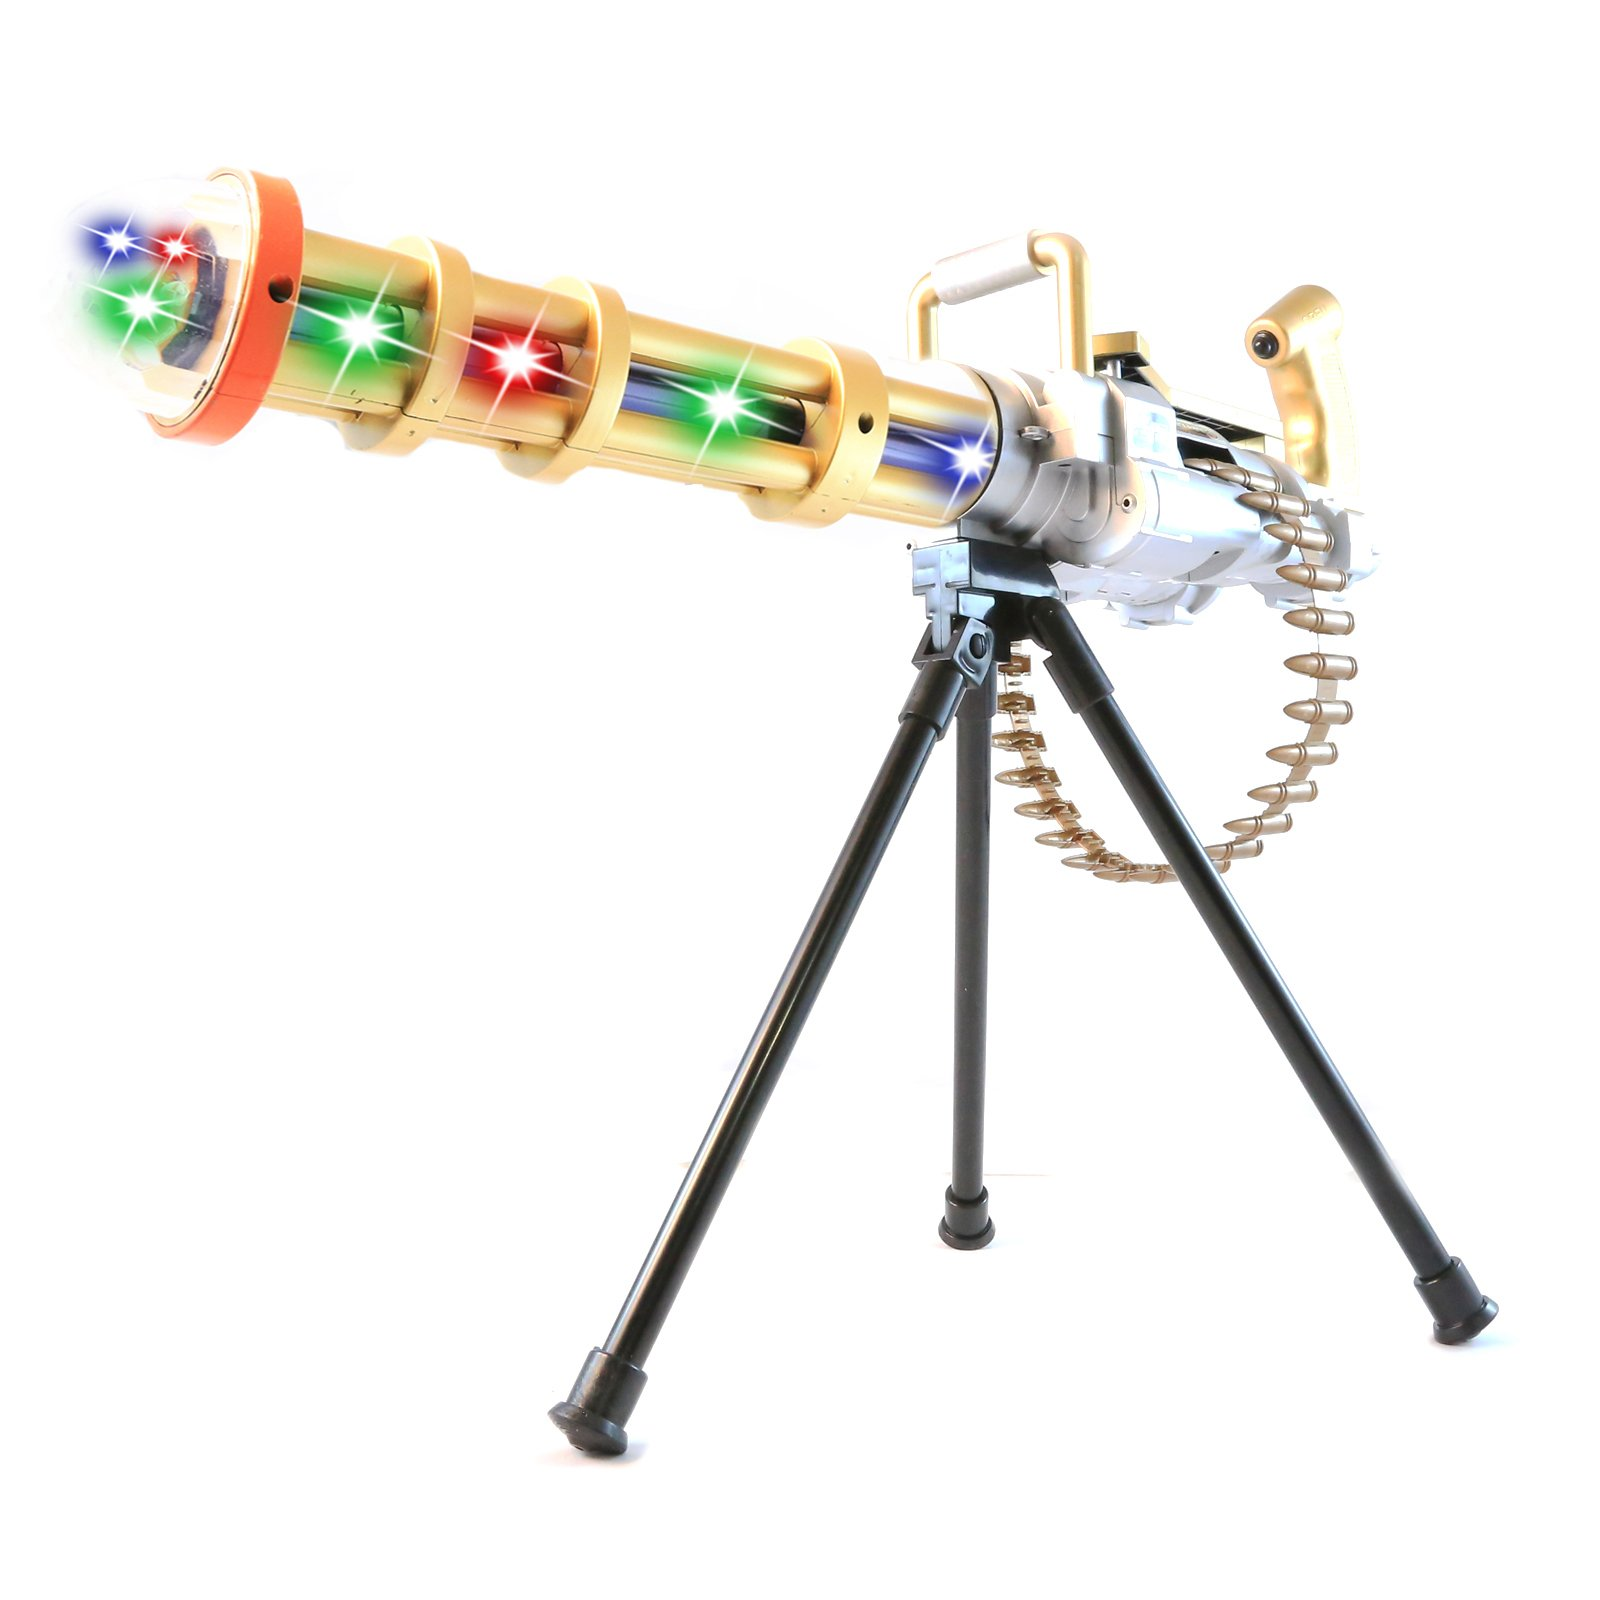 Elite Force Battery Operated Machine Gun Kids Toy Flashing Lights and Sound Gold